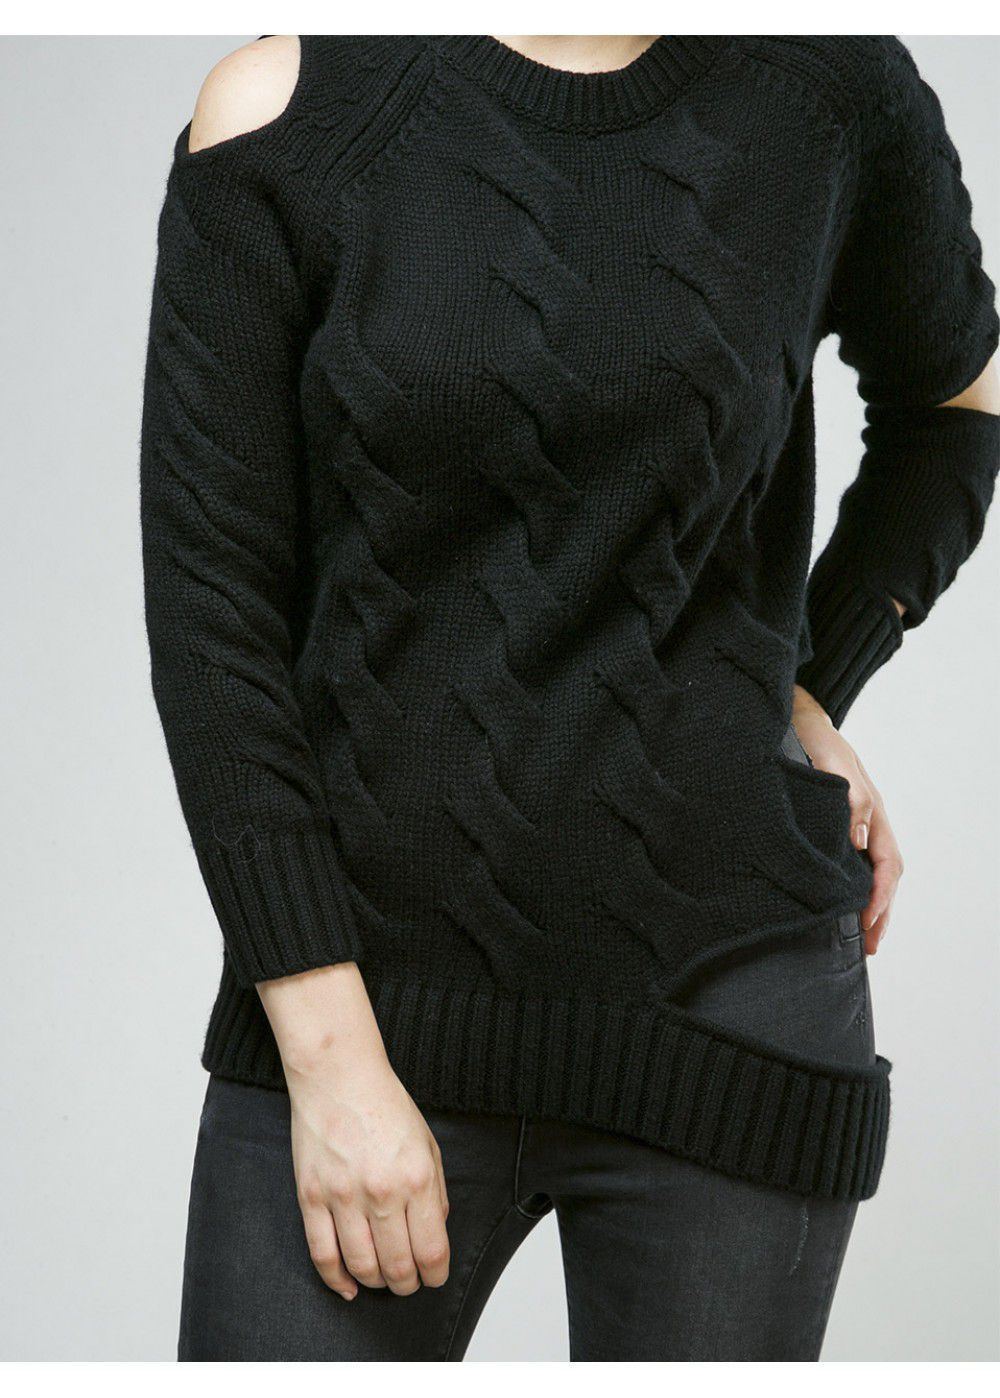 Zoe Jordan Black Sweater